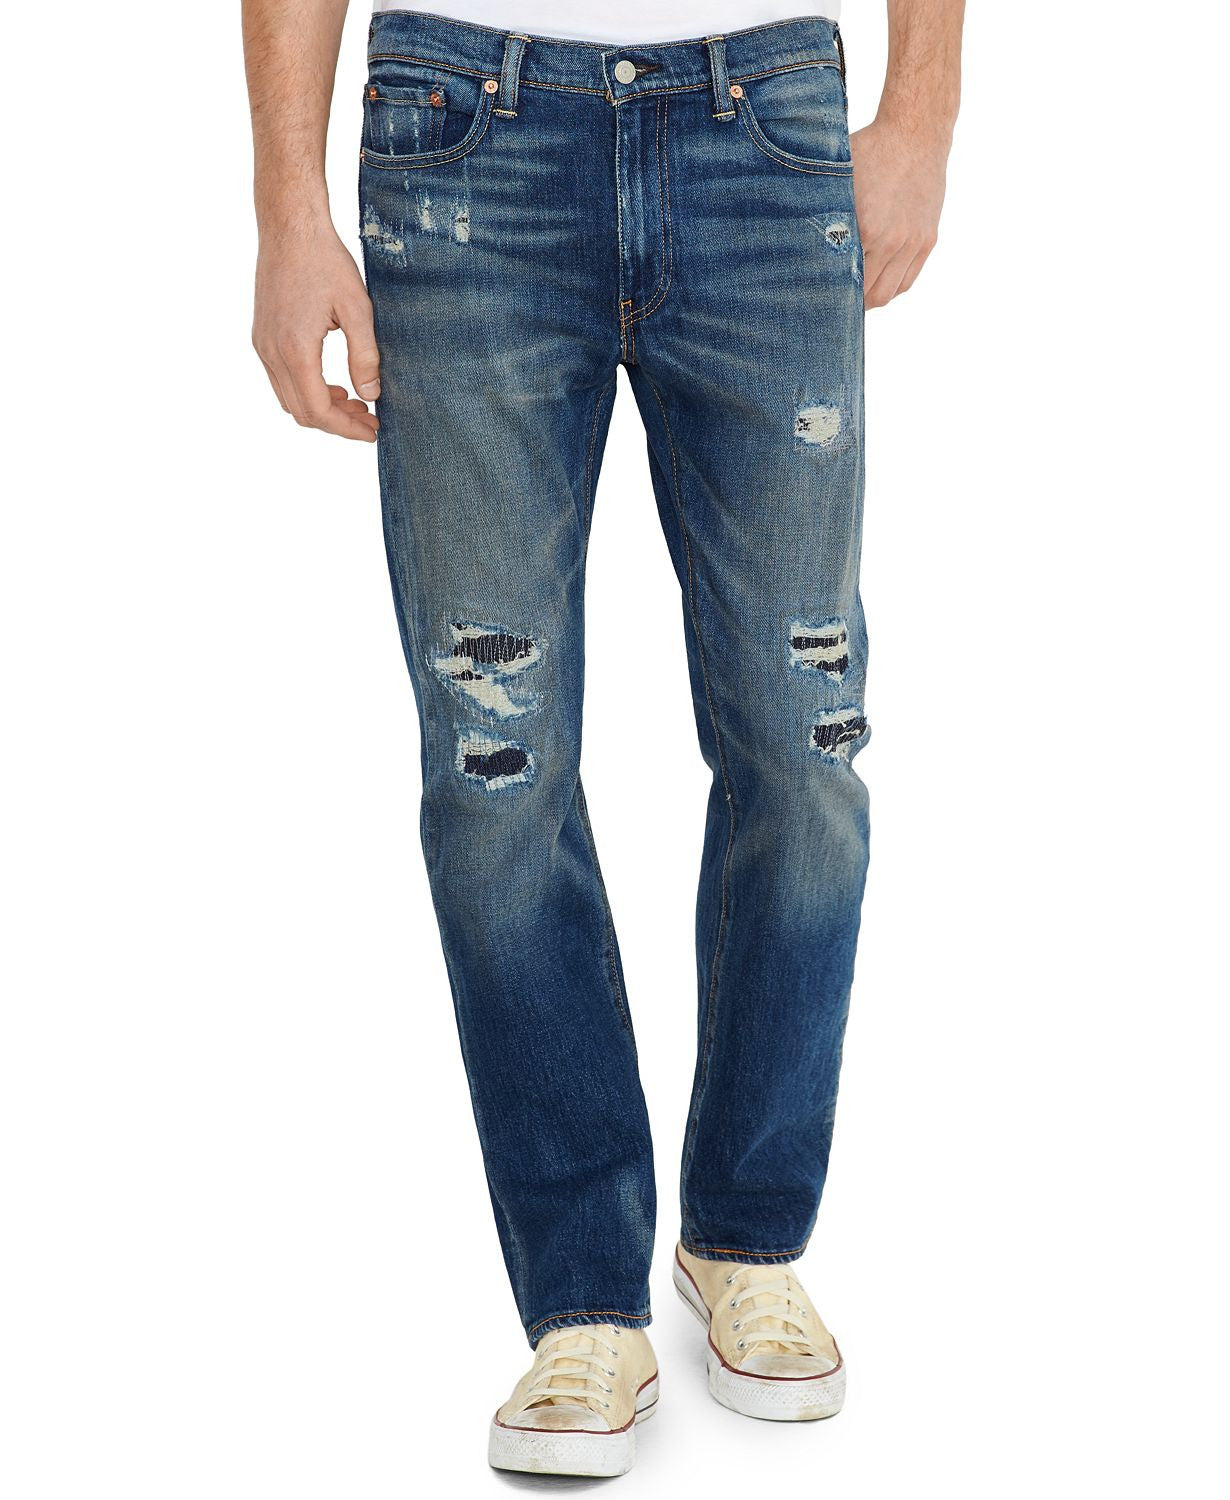 Levi's 513 Slim Straight-fit Coburns Cut Premium Wash Ripped Jeans Coburns Cut